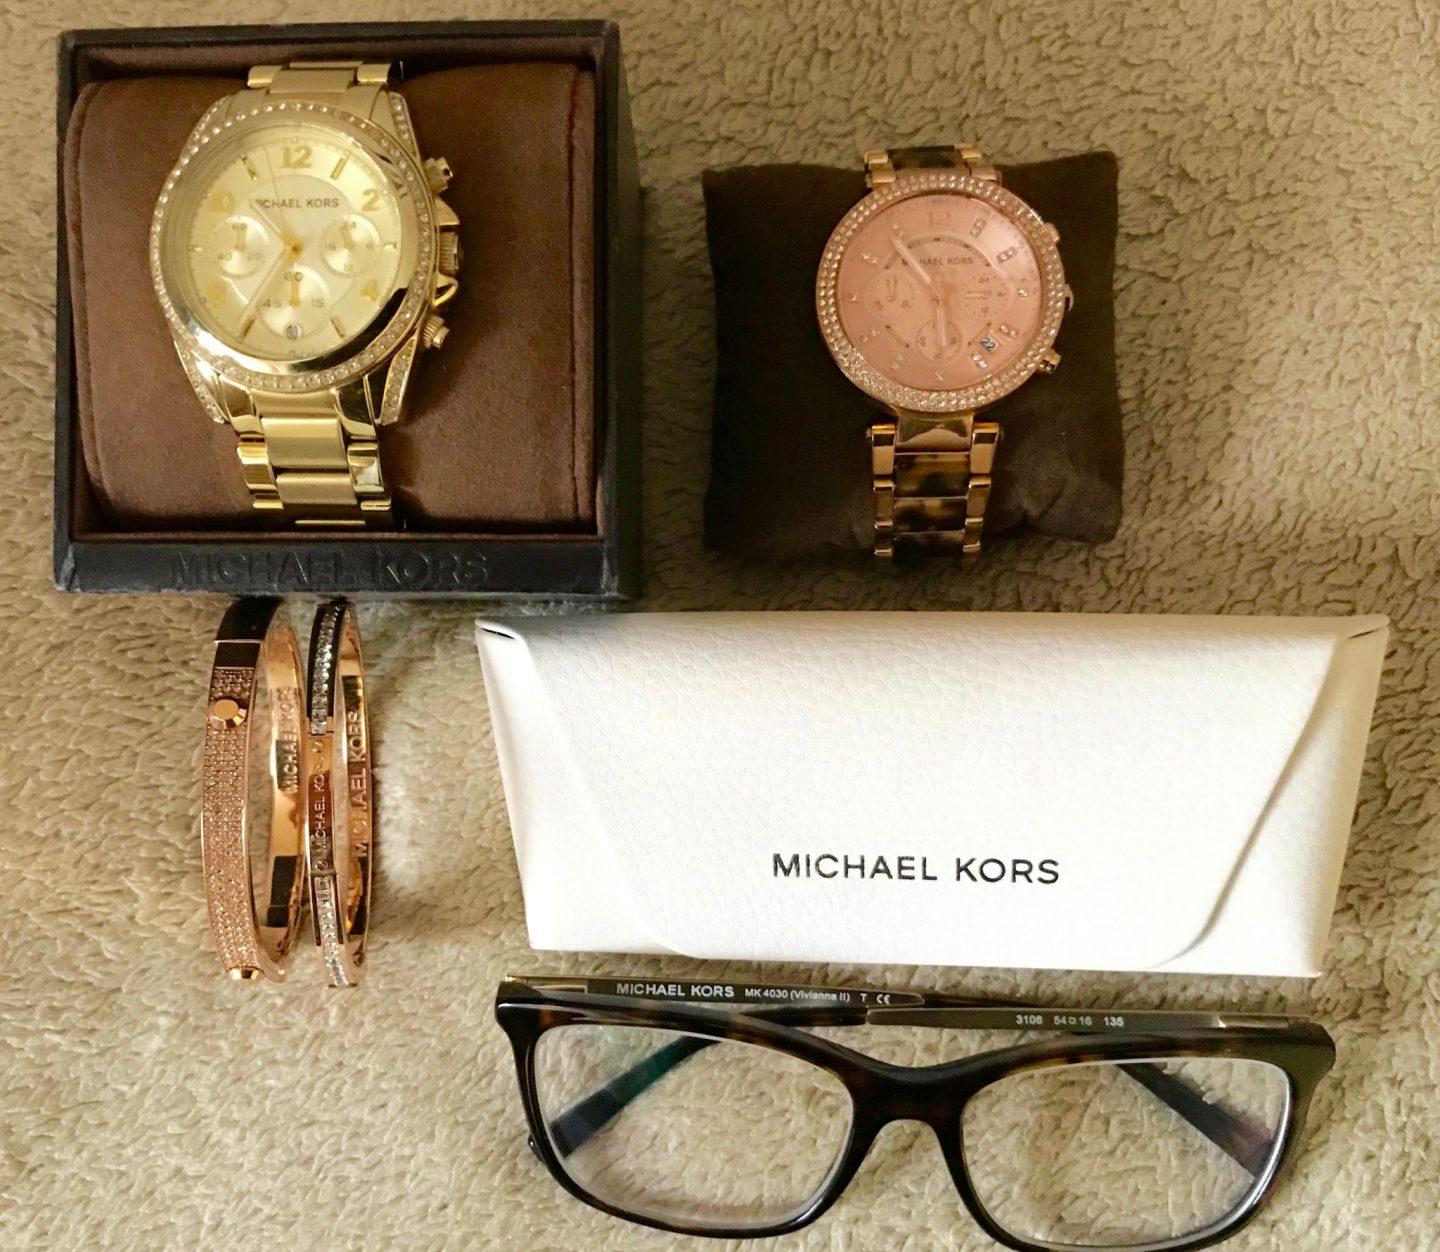 My Michael Kors